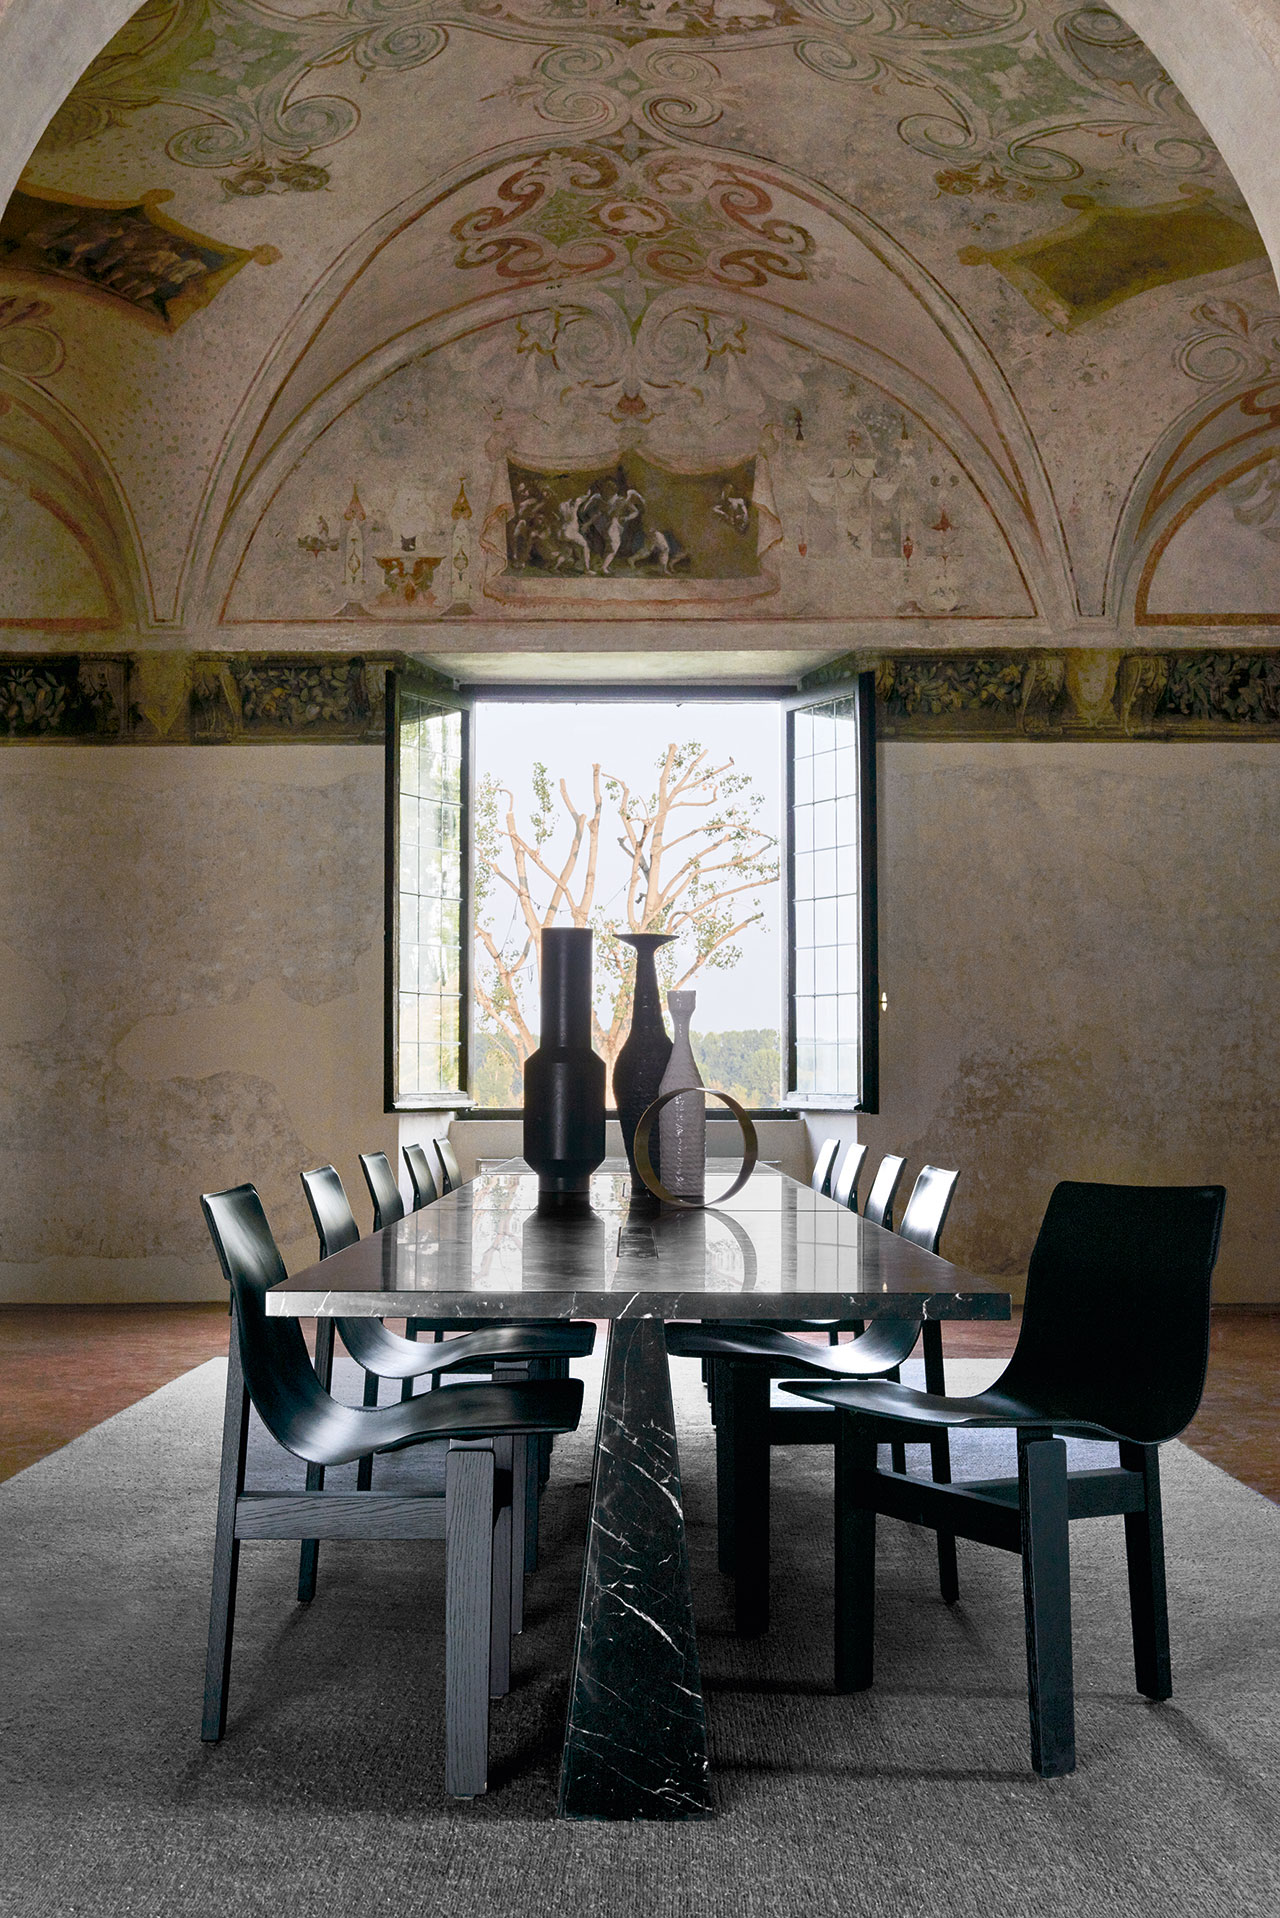 Incas table and Tre3 chairs, The Mangiarotti Collection, Agapecasa© Agape